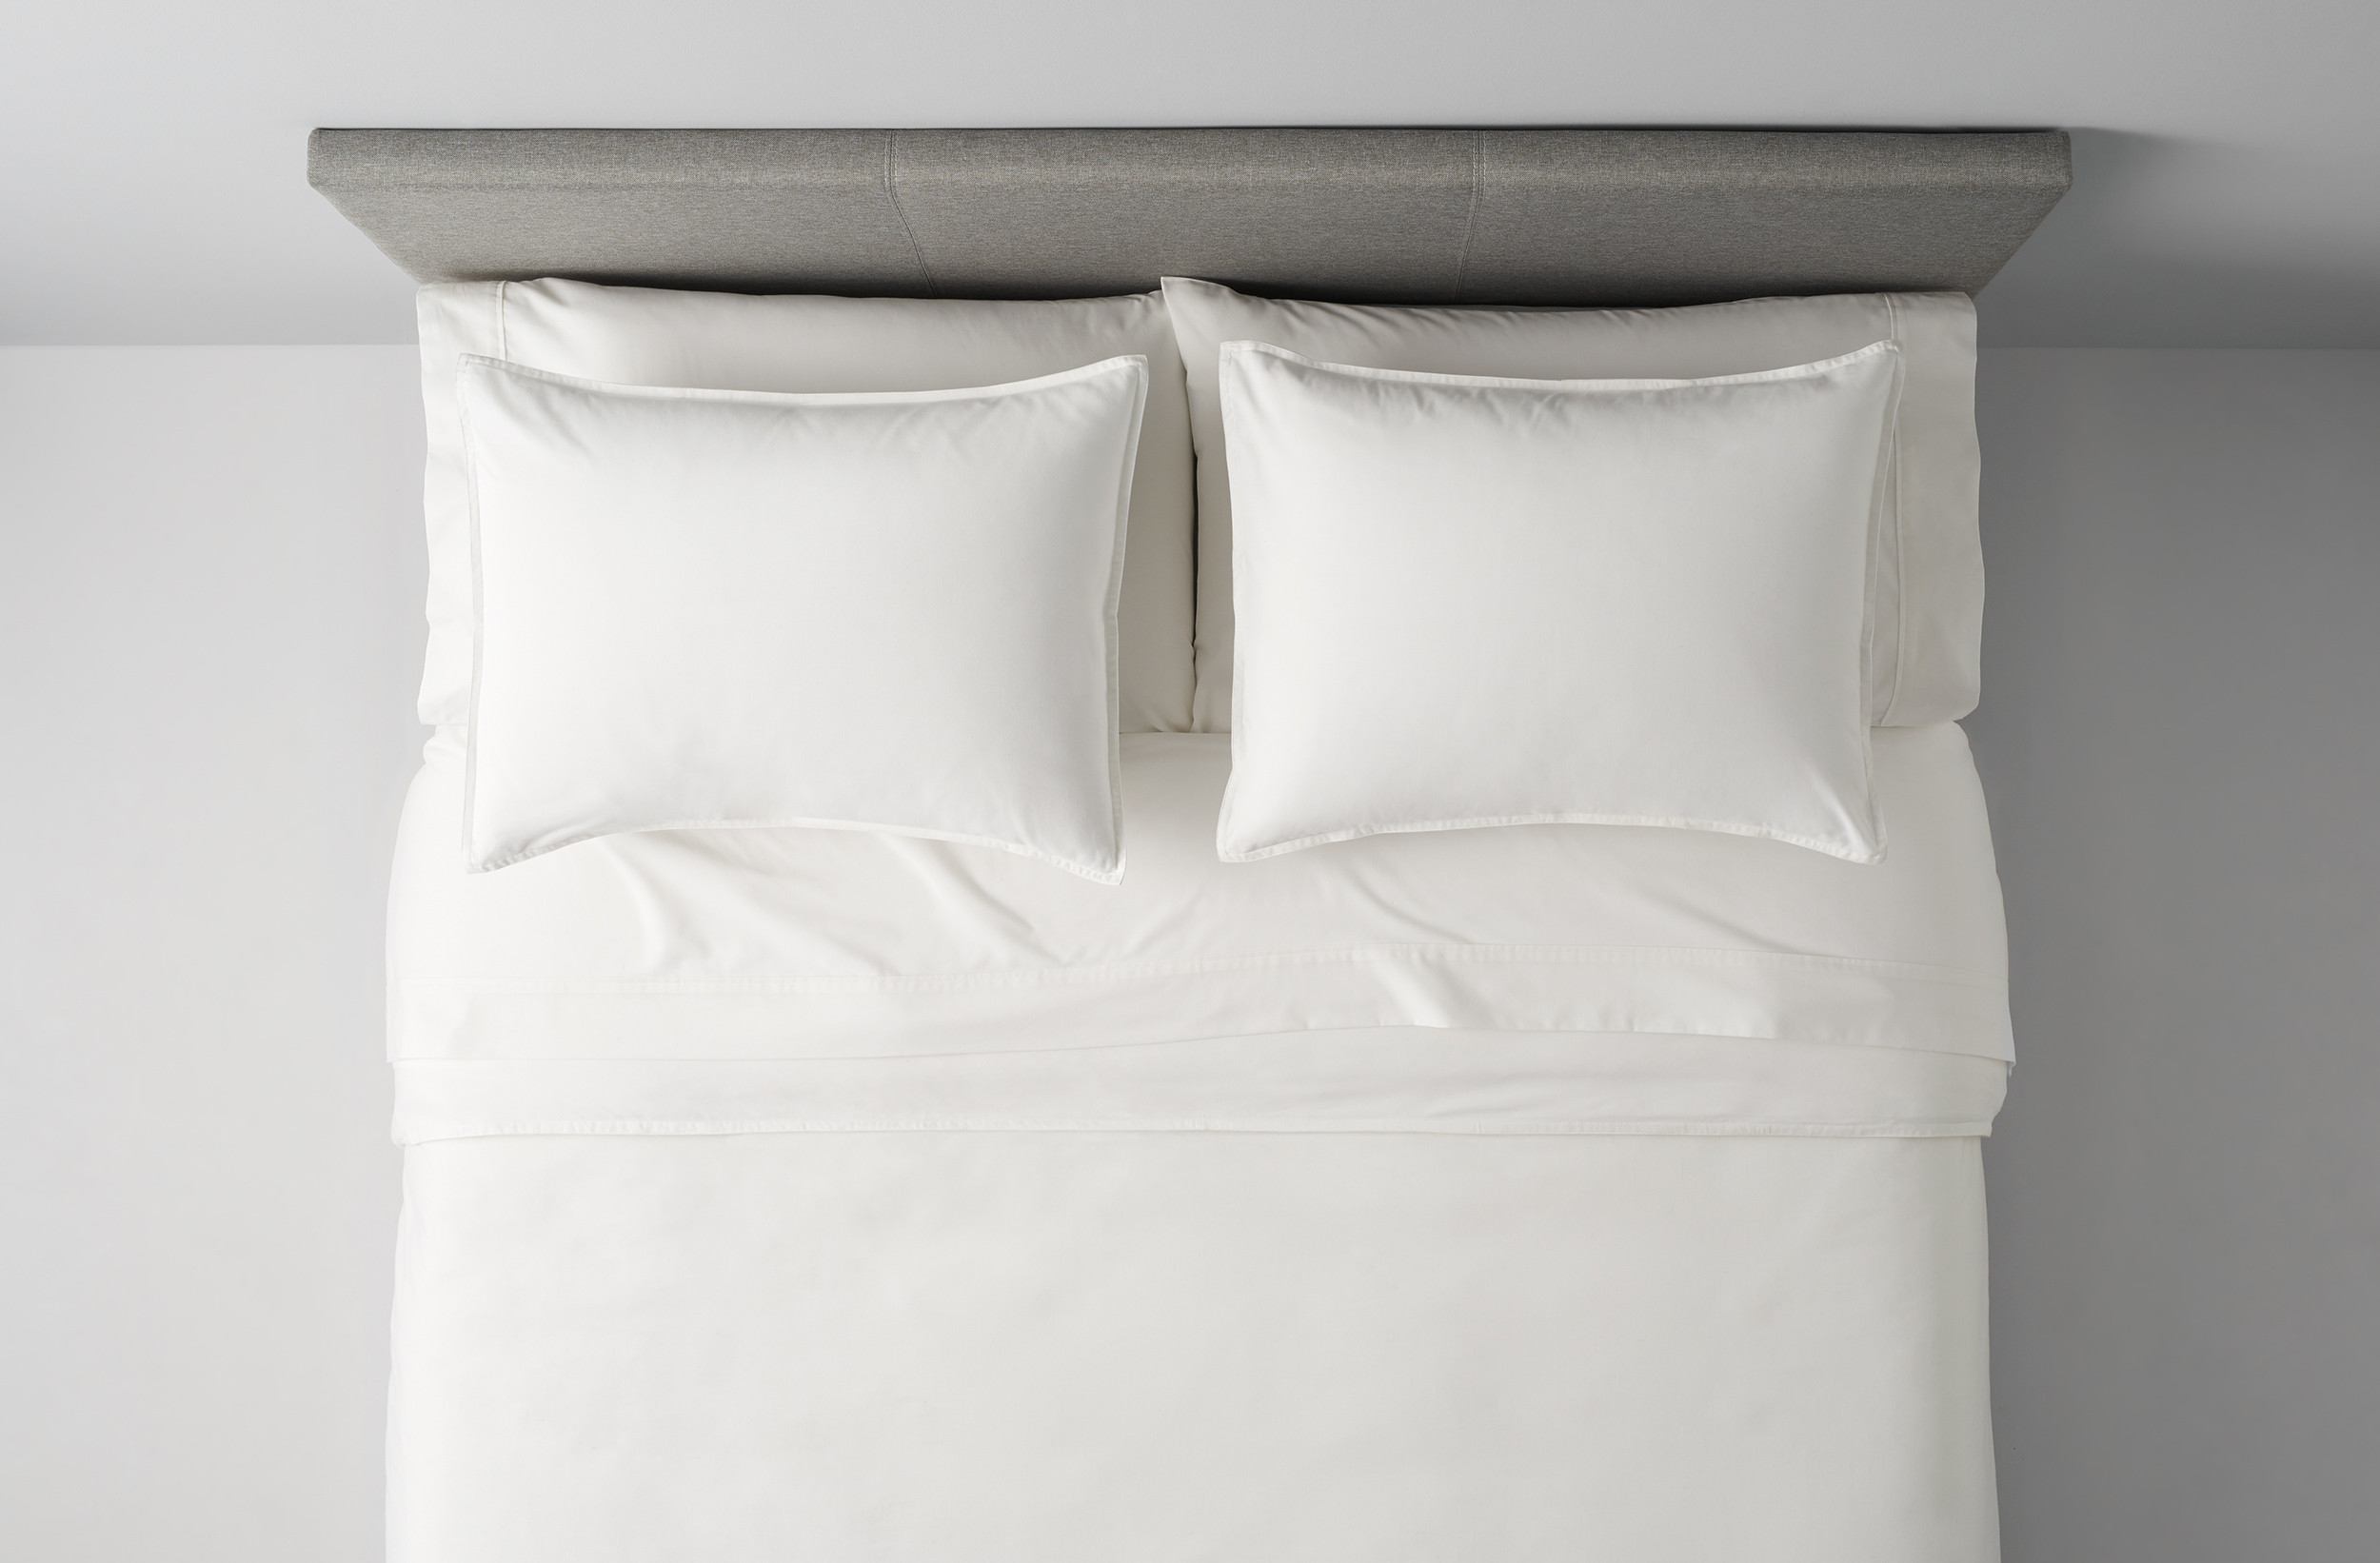 2017_11_29_Made-By-Design-FQ-Easy-Care-Solid-Duvet--Sham-Set-White_v3